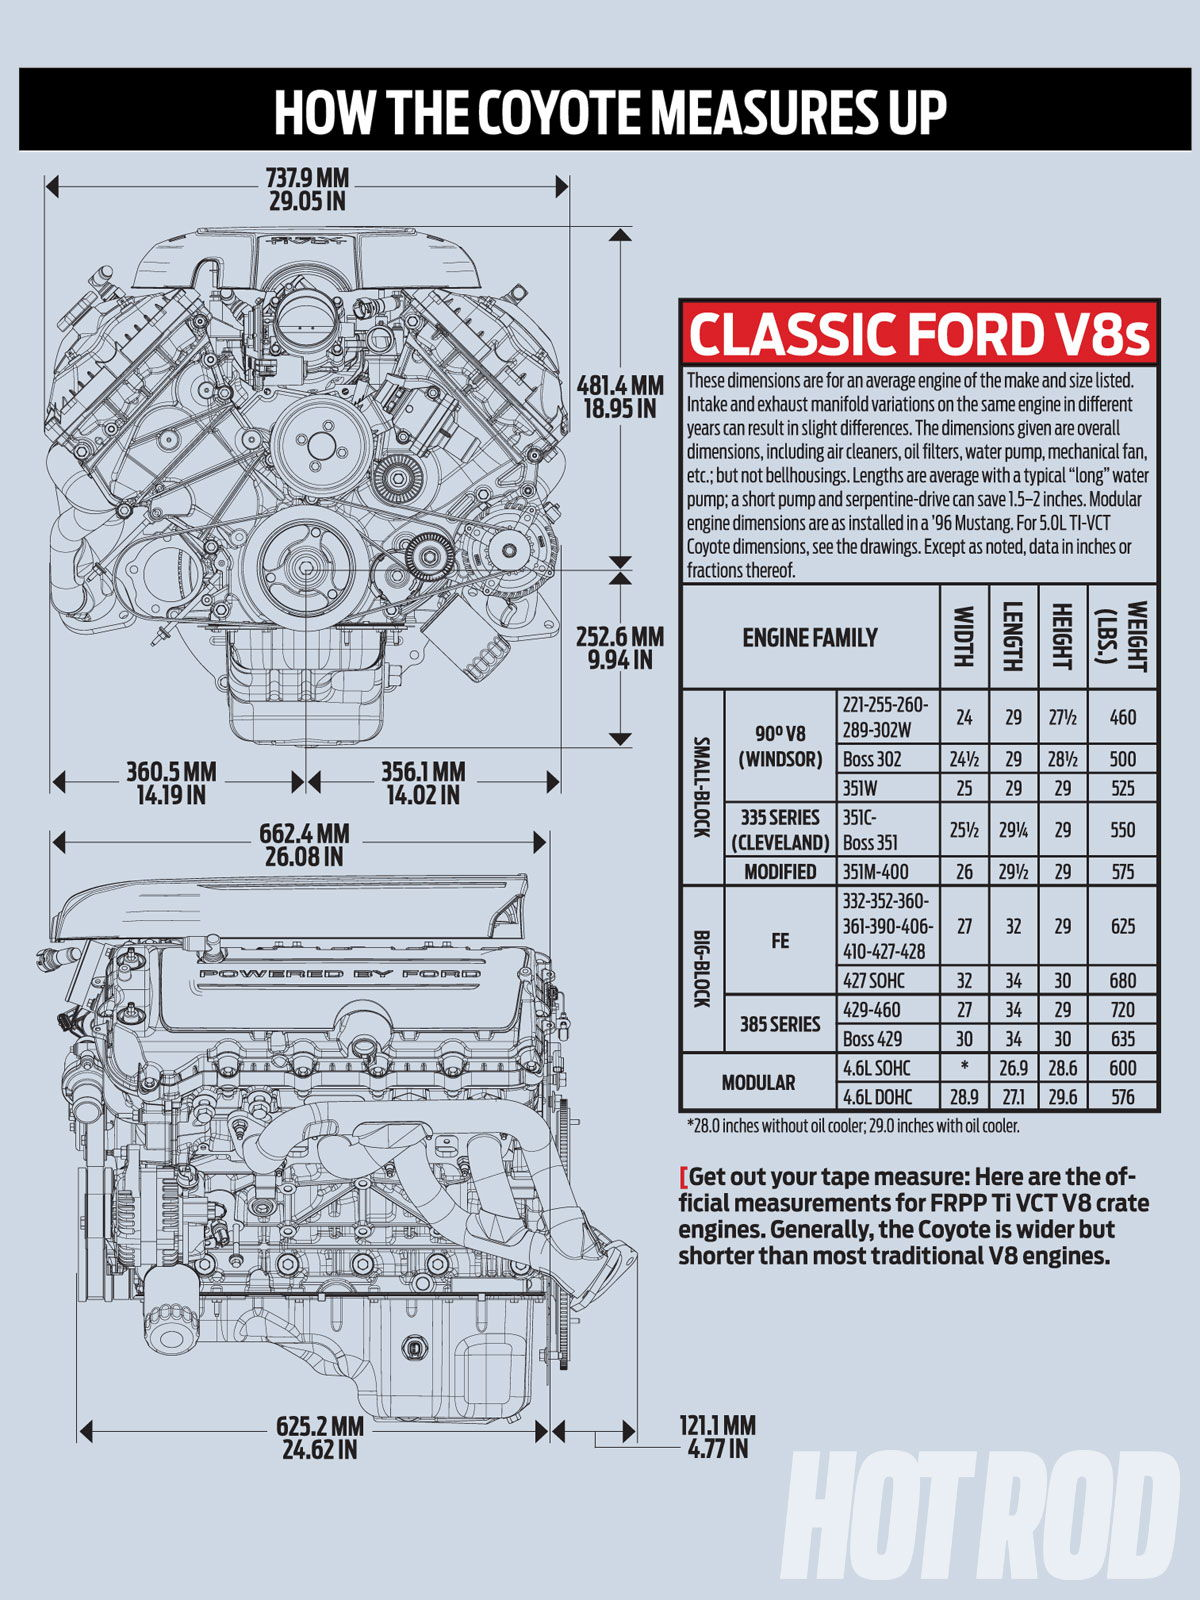 ford flathead firing order diagram s13 wiring coyote swaps? do they fit? - rx7club.com mazda rx7 forum